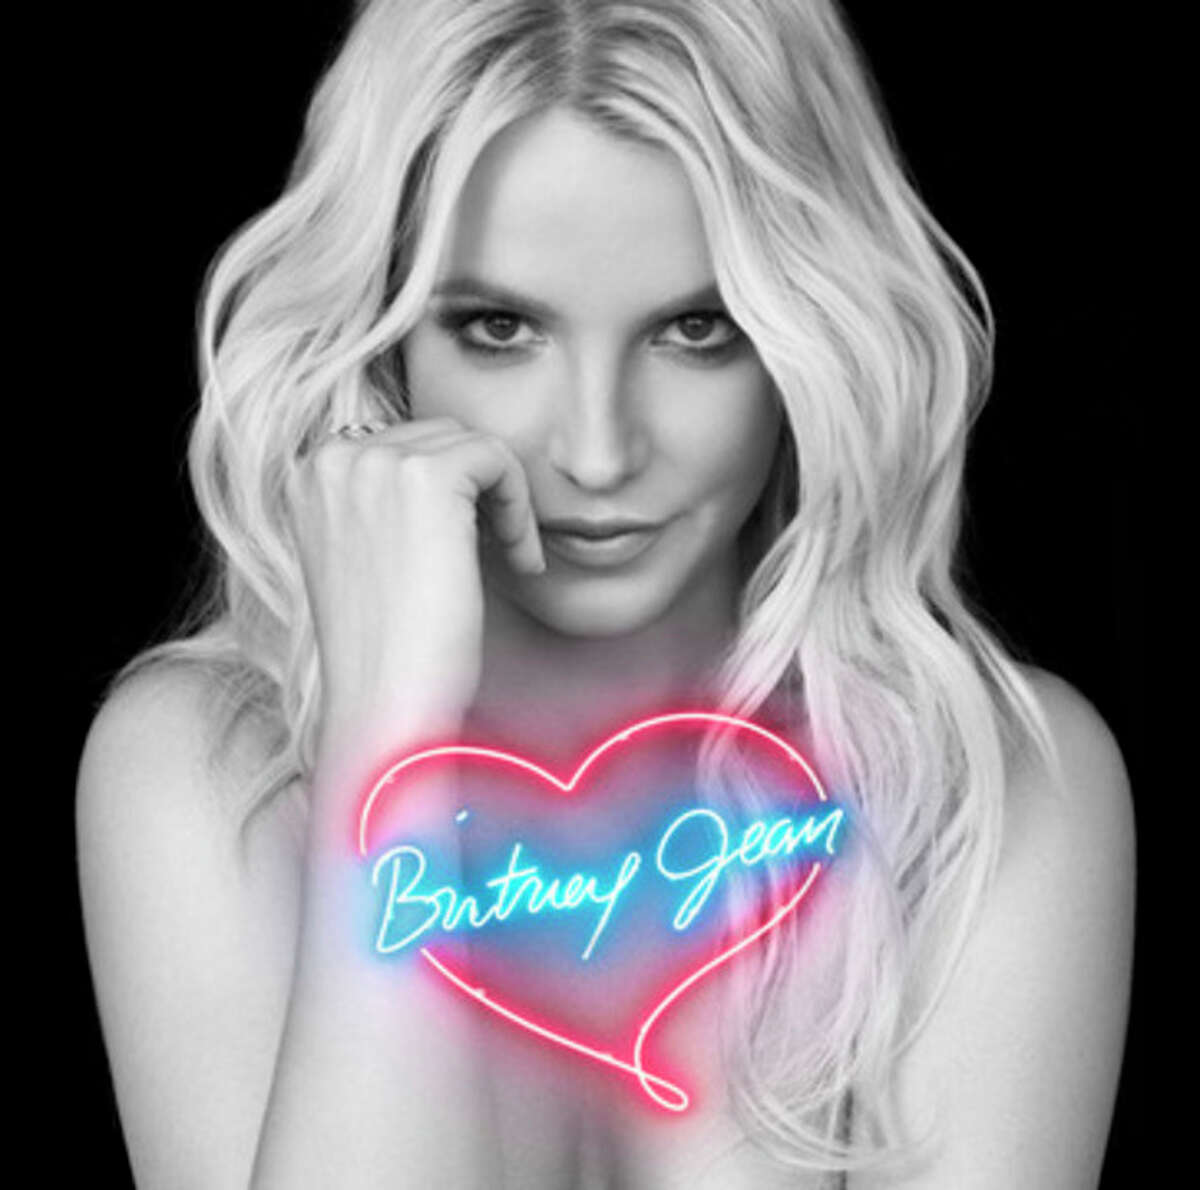 This photo provided by RCA Records shows the album cover for Britney Spears',